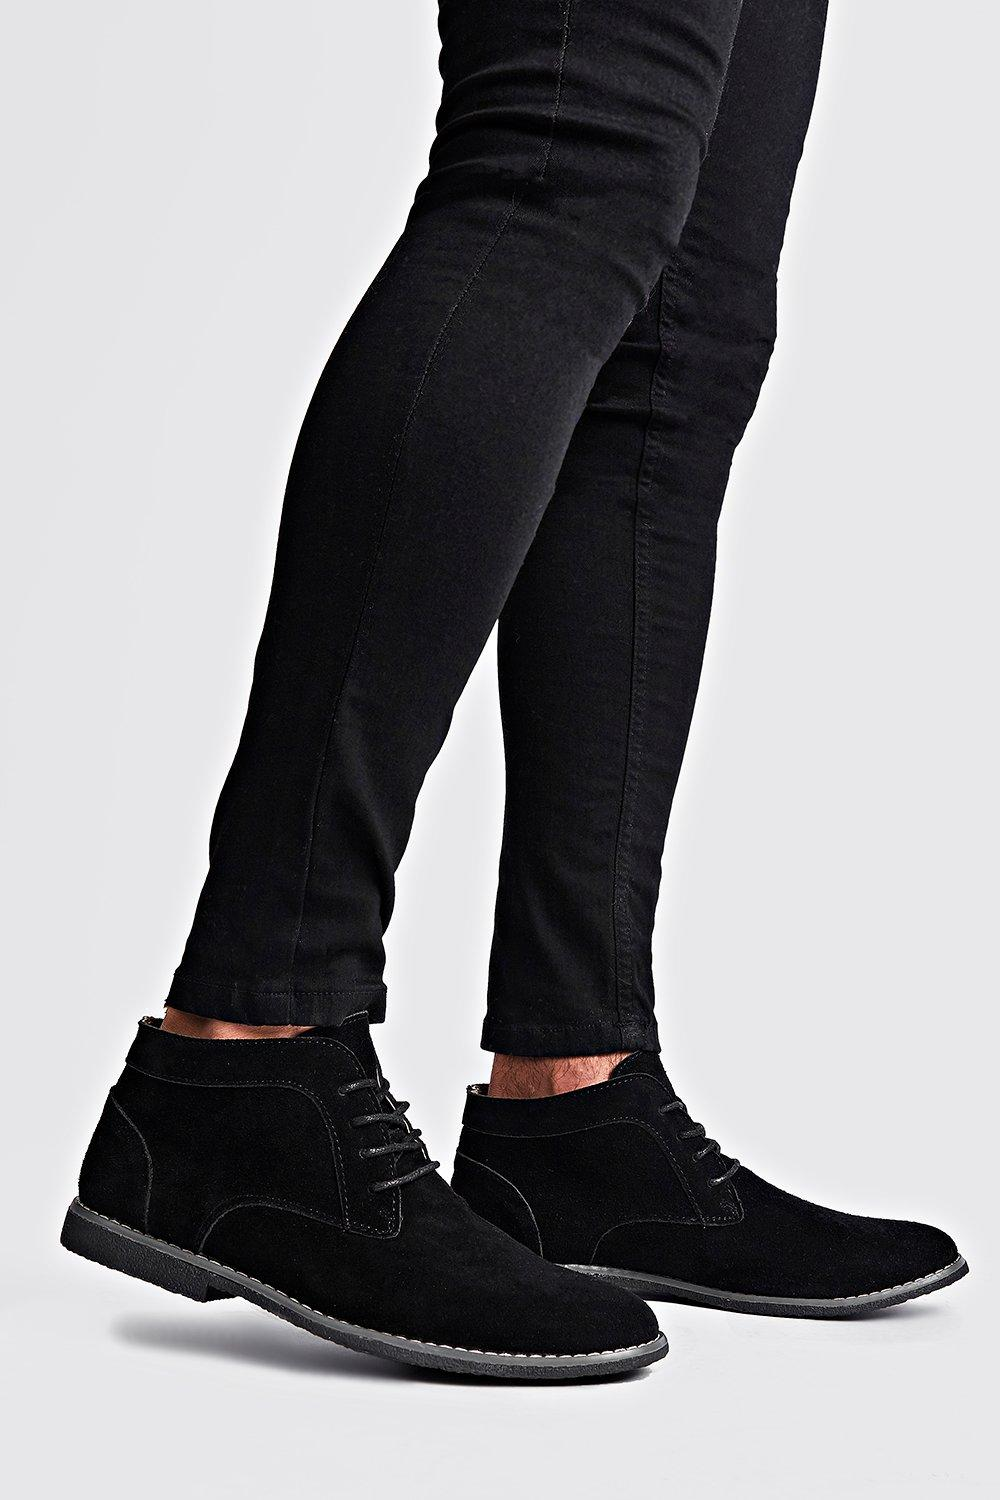 mens real suede desert boots - black